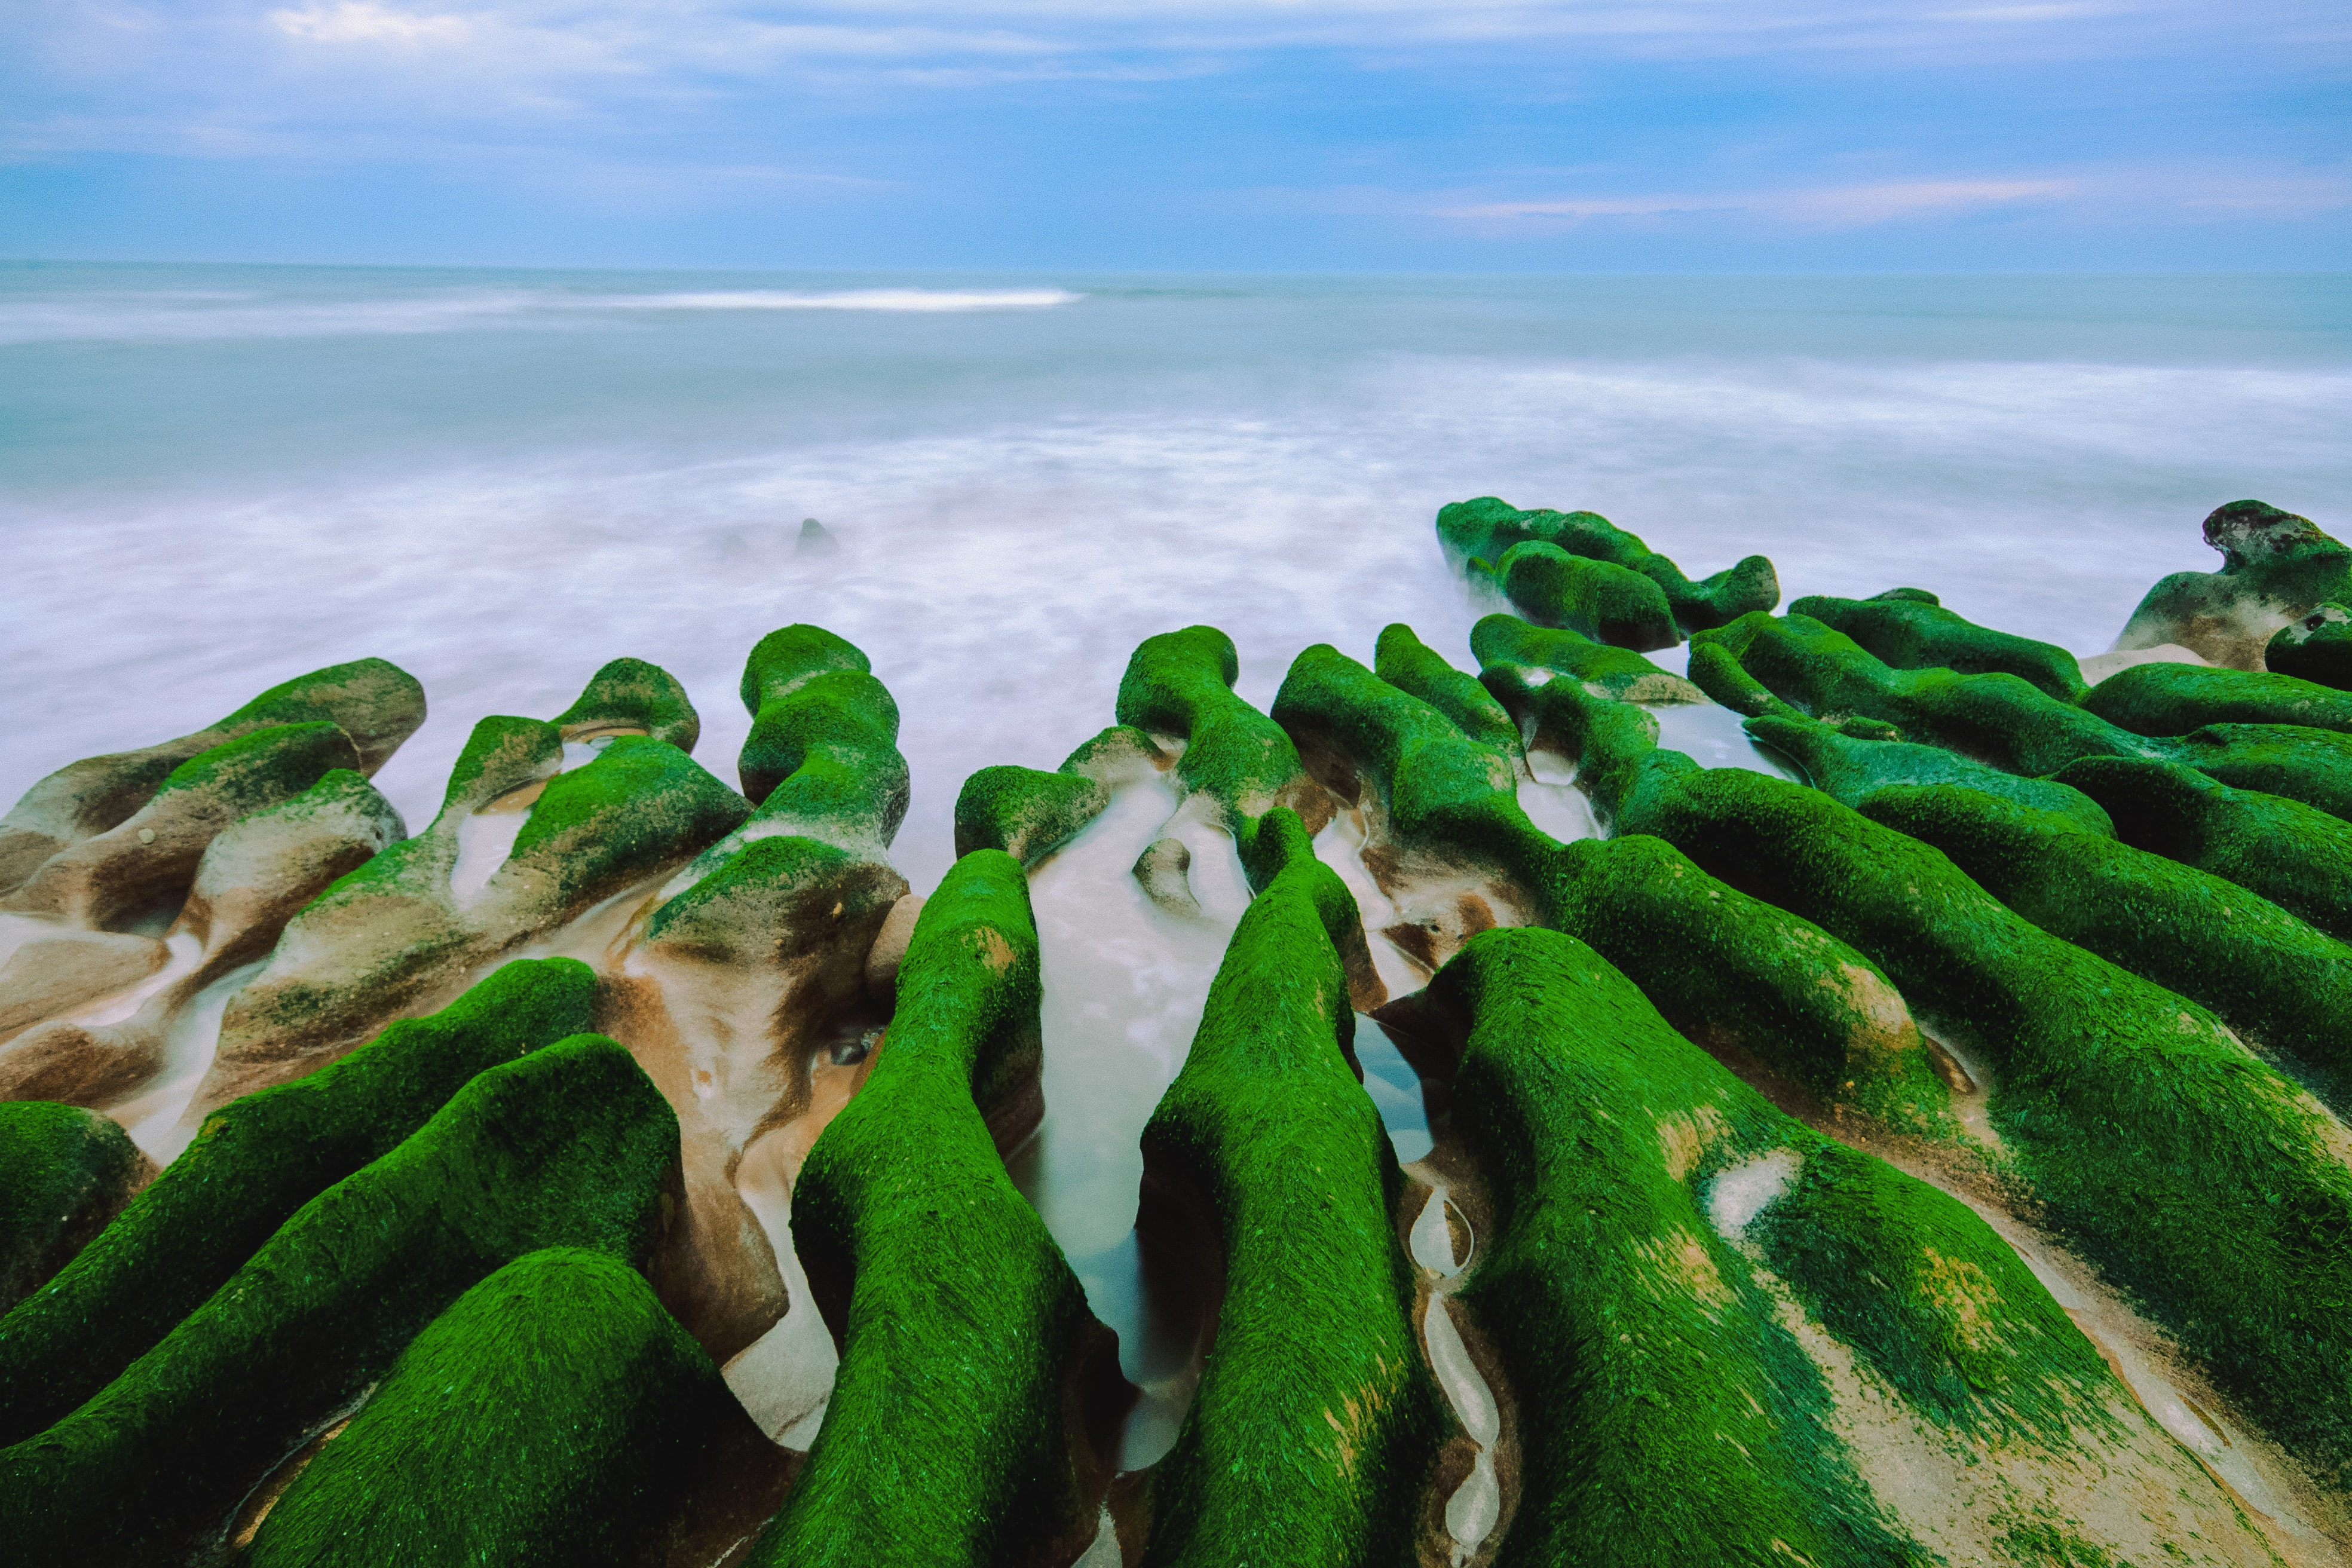 aerial photography of moss-covered stone formation at shore at daytime